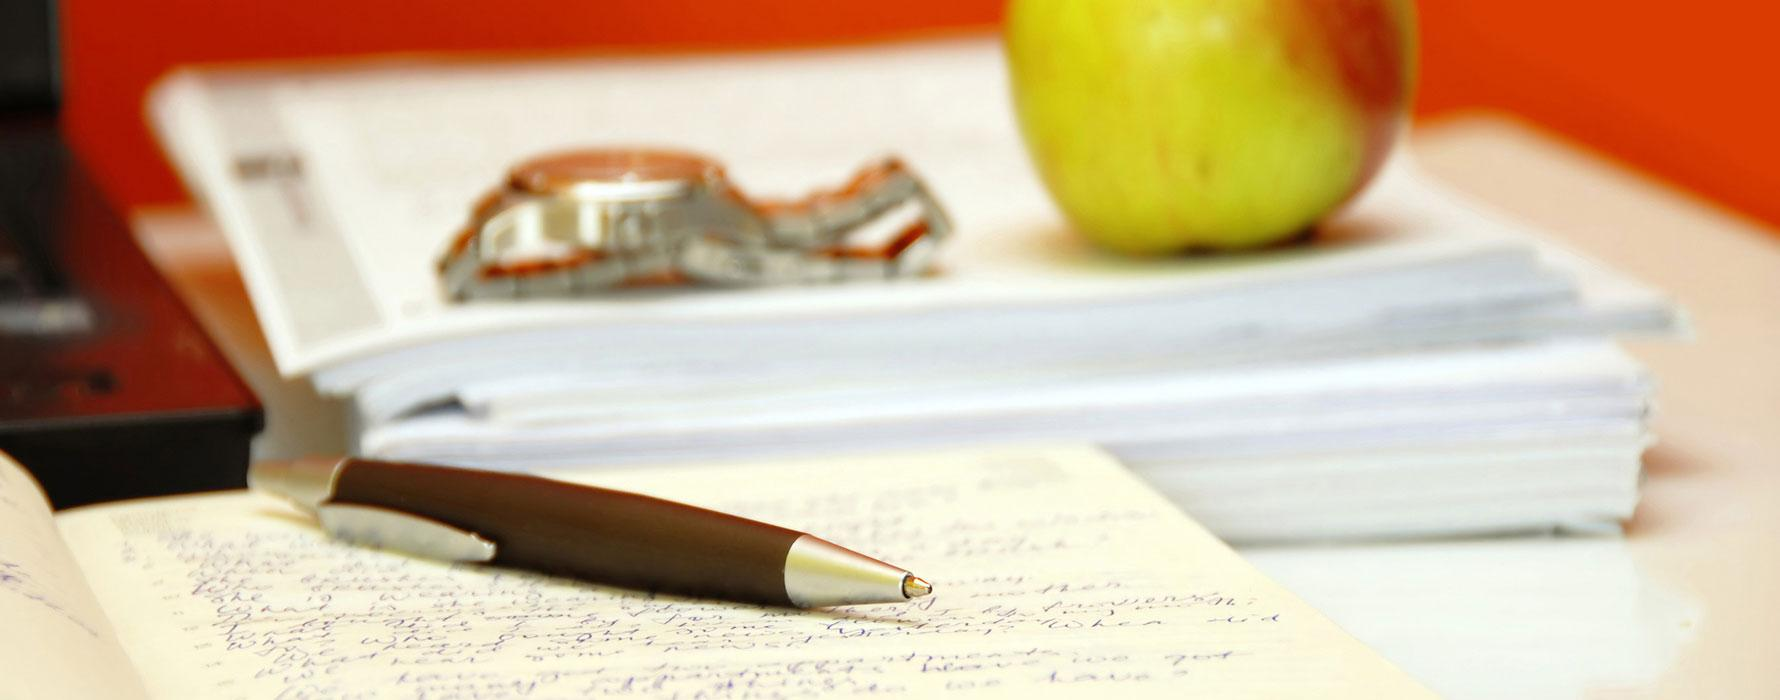 Apple, watch and pen on study notes